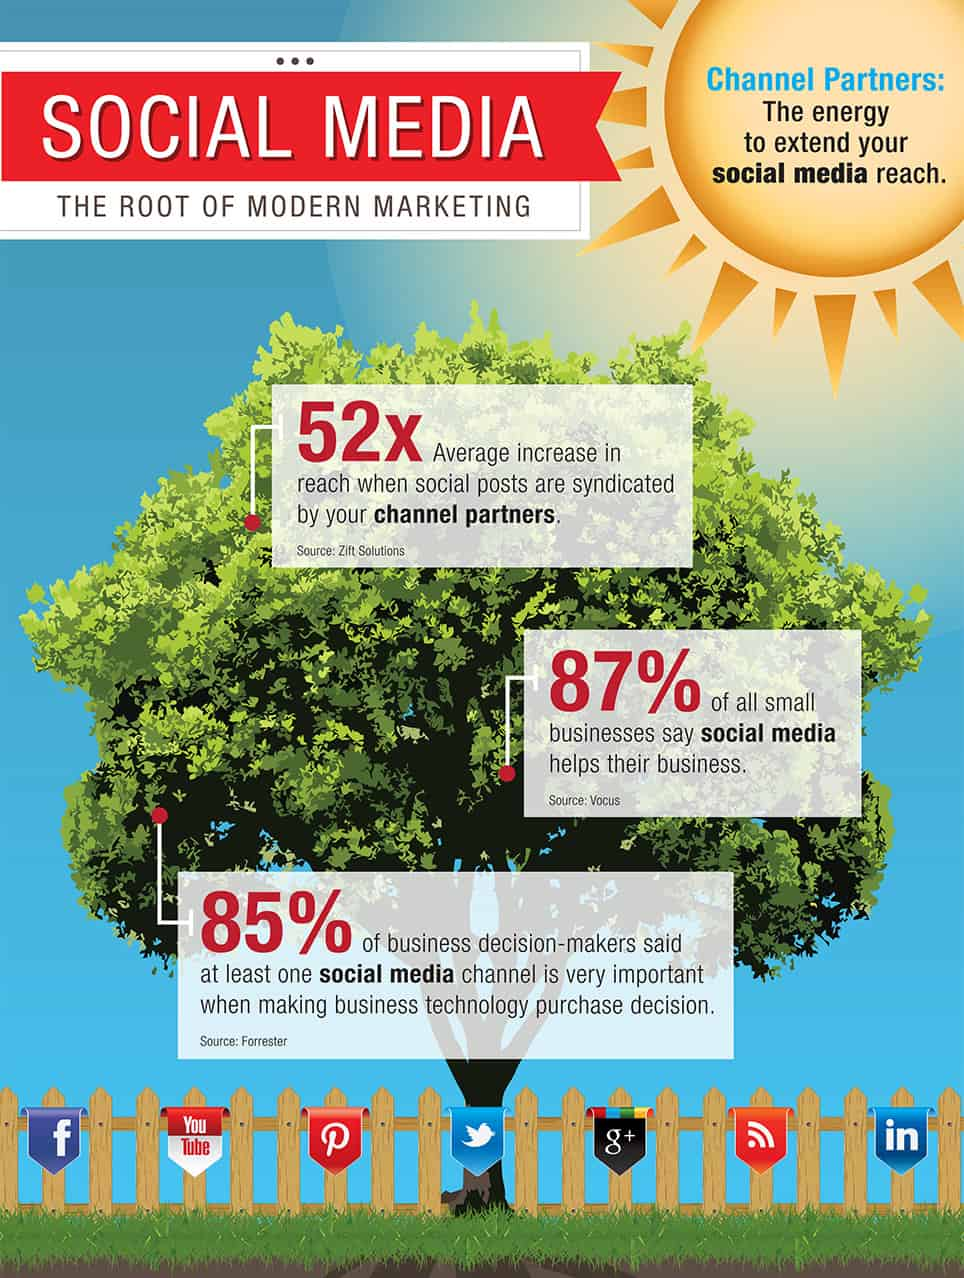 Social Media | The Root of Modern Marketing